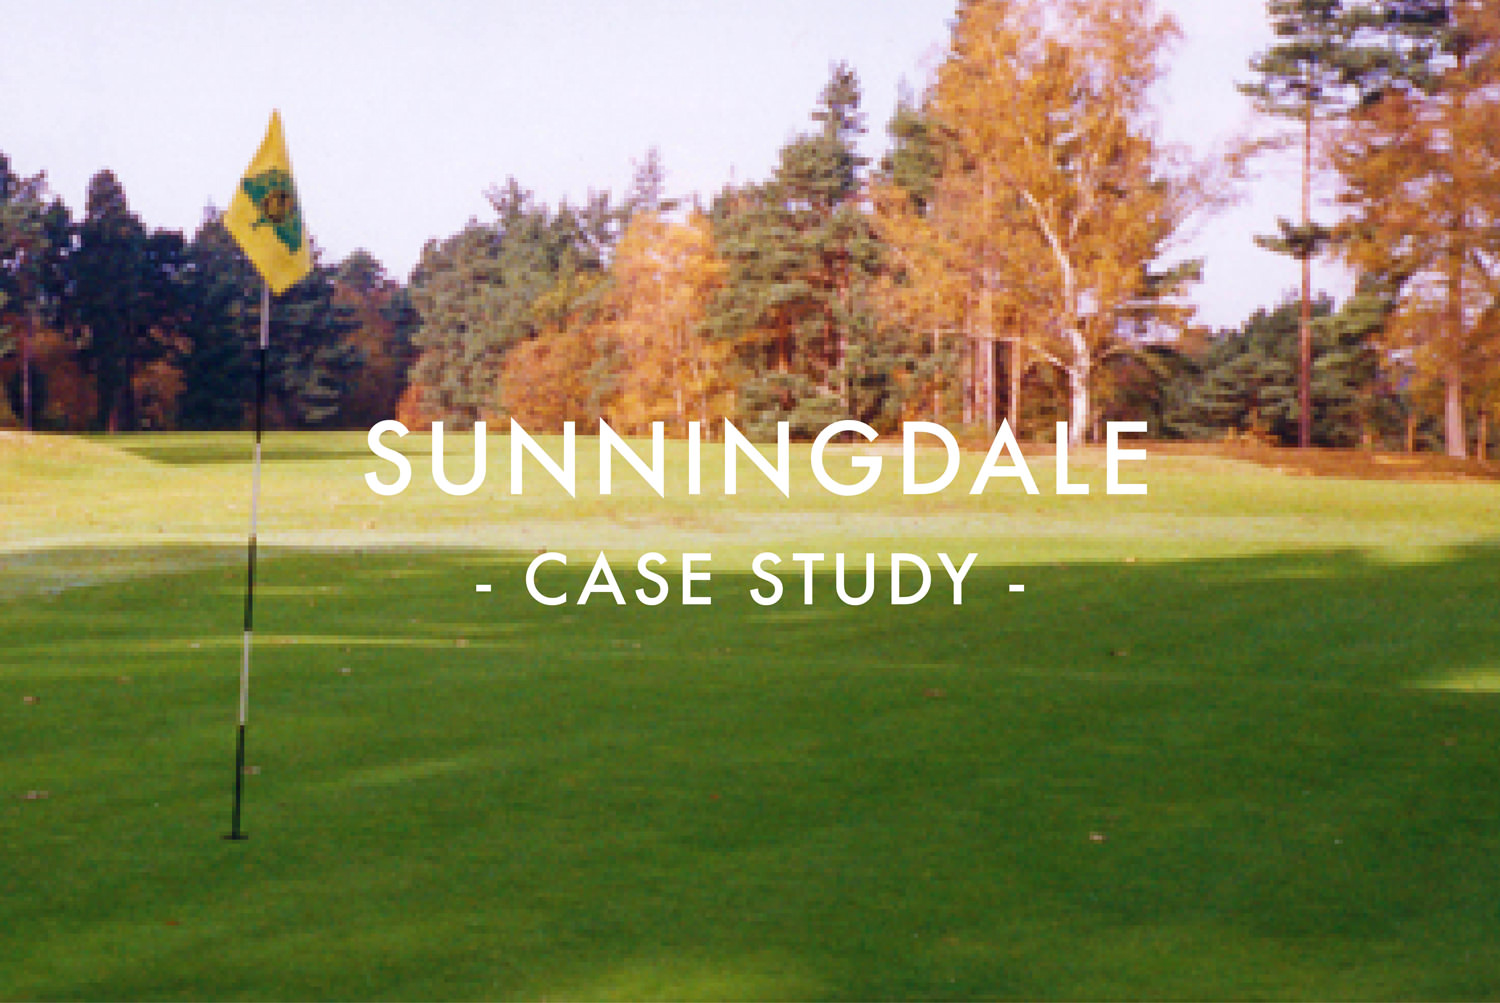 Sunningdale Golf Club - Greens Drainage Installation Case Study